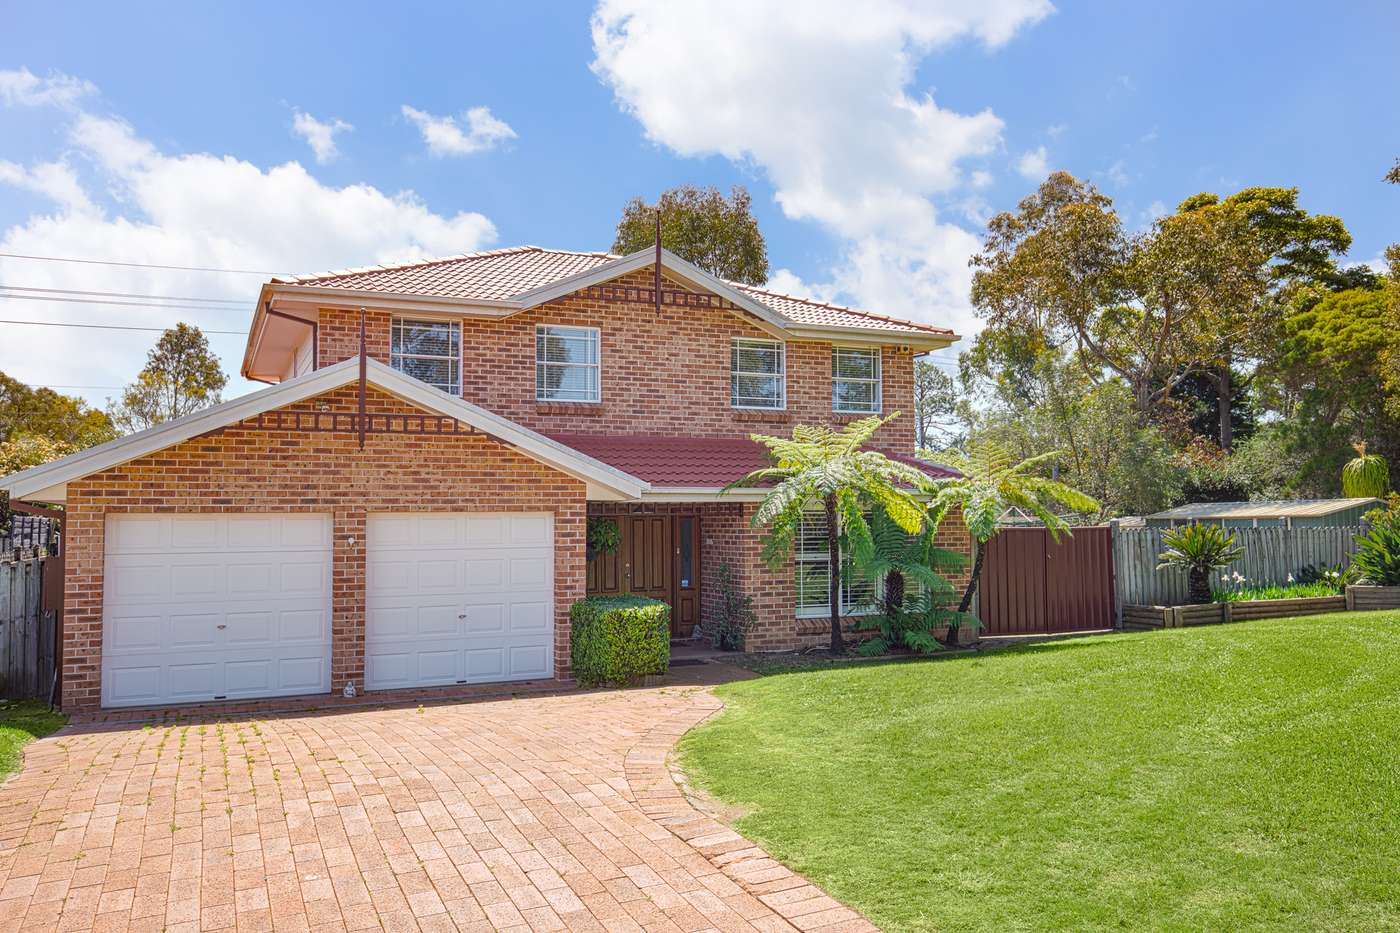 Main view of Homely house listing, 36 Alexandrina Court, Wattle Grove, NSW 2173